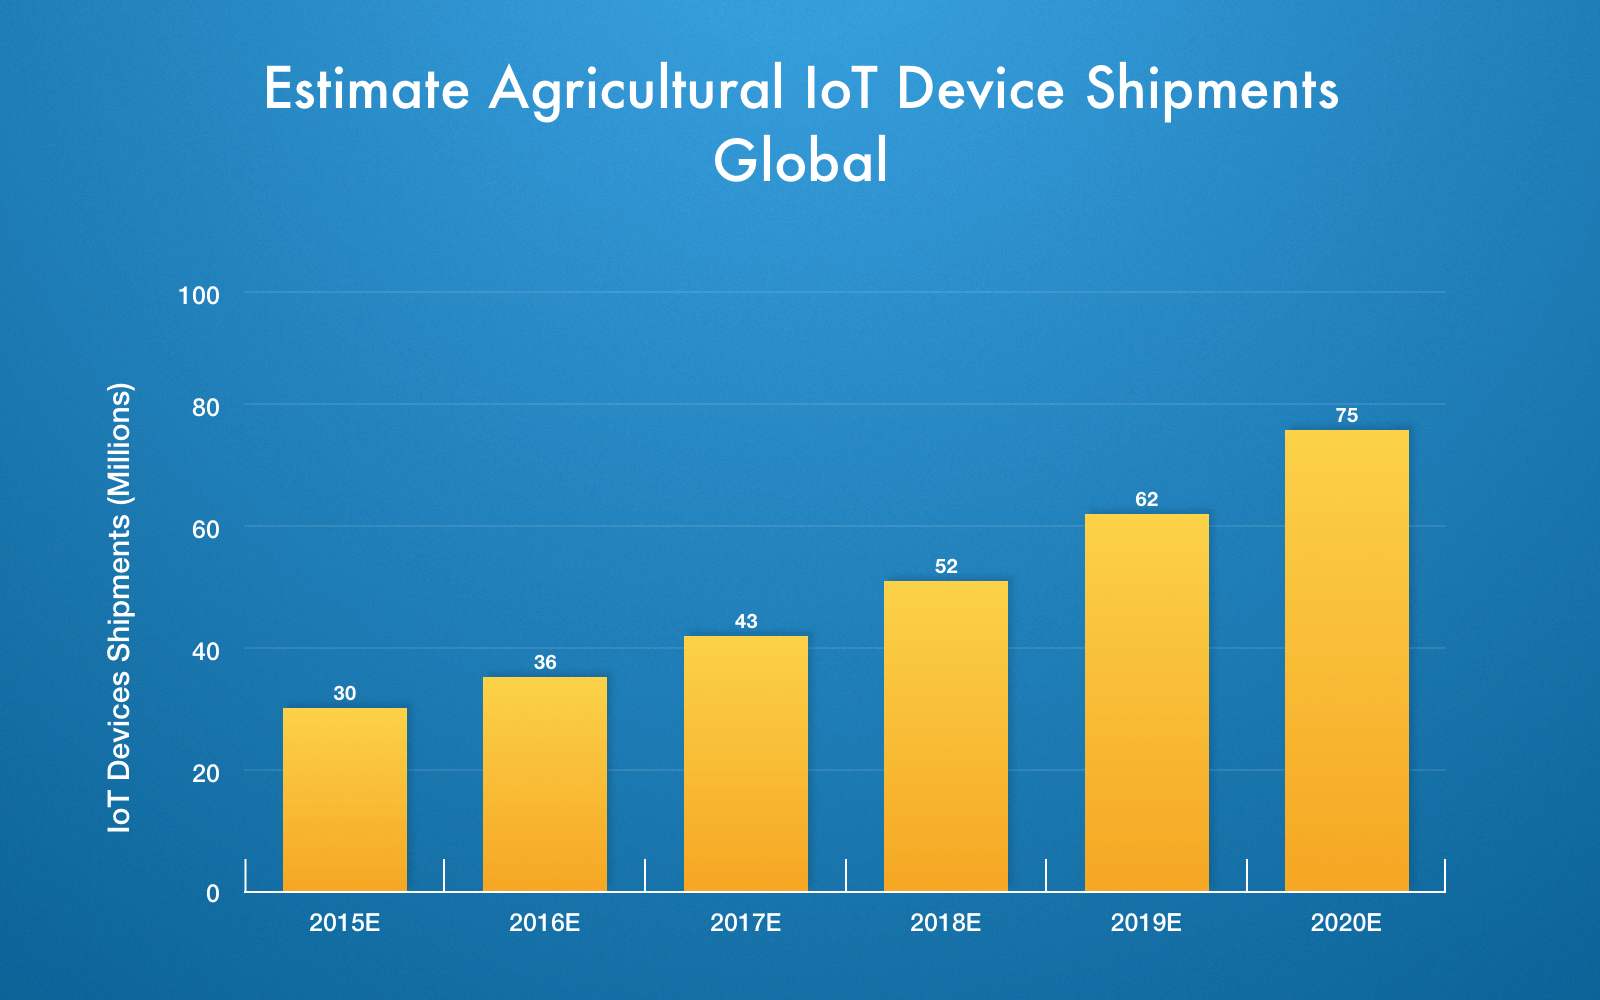 Smart agriculture market size can be measured by the number of agricultural IoT devices shipped worldwide